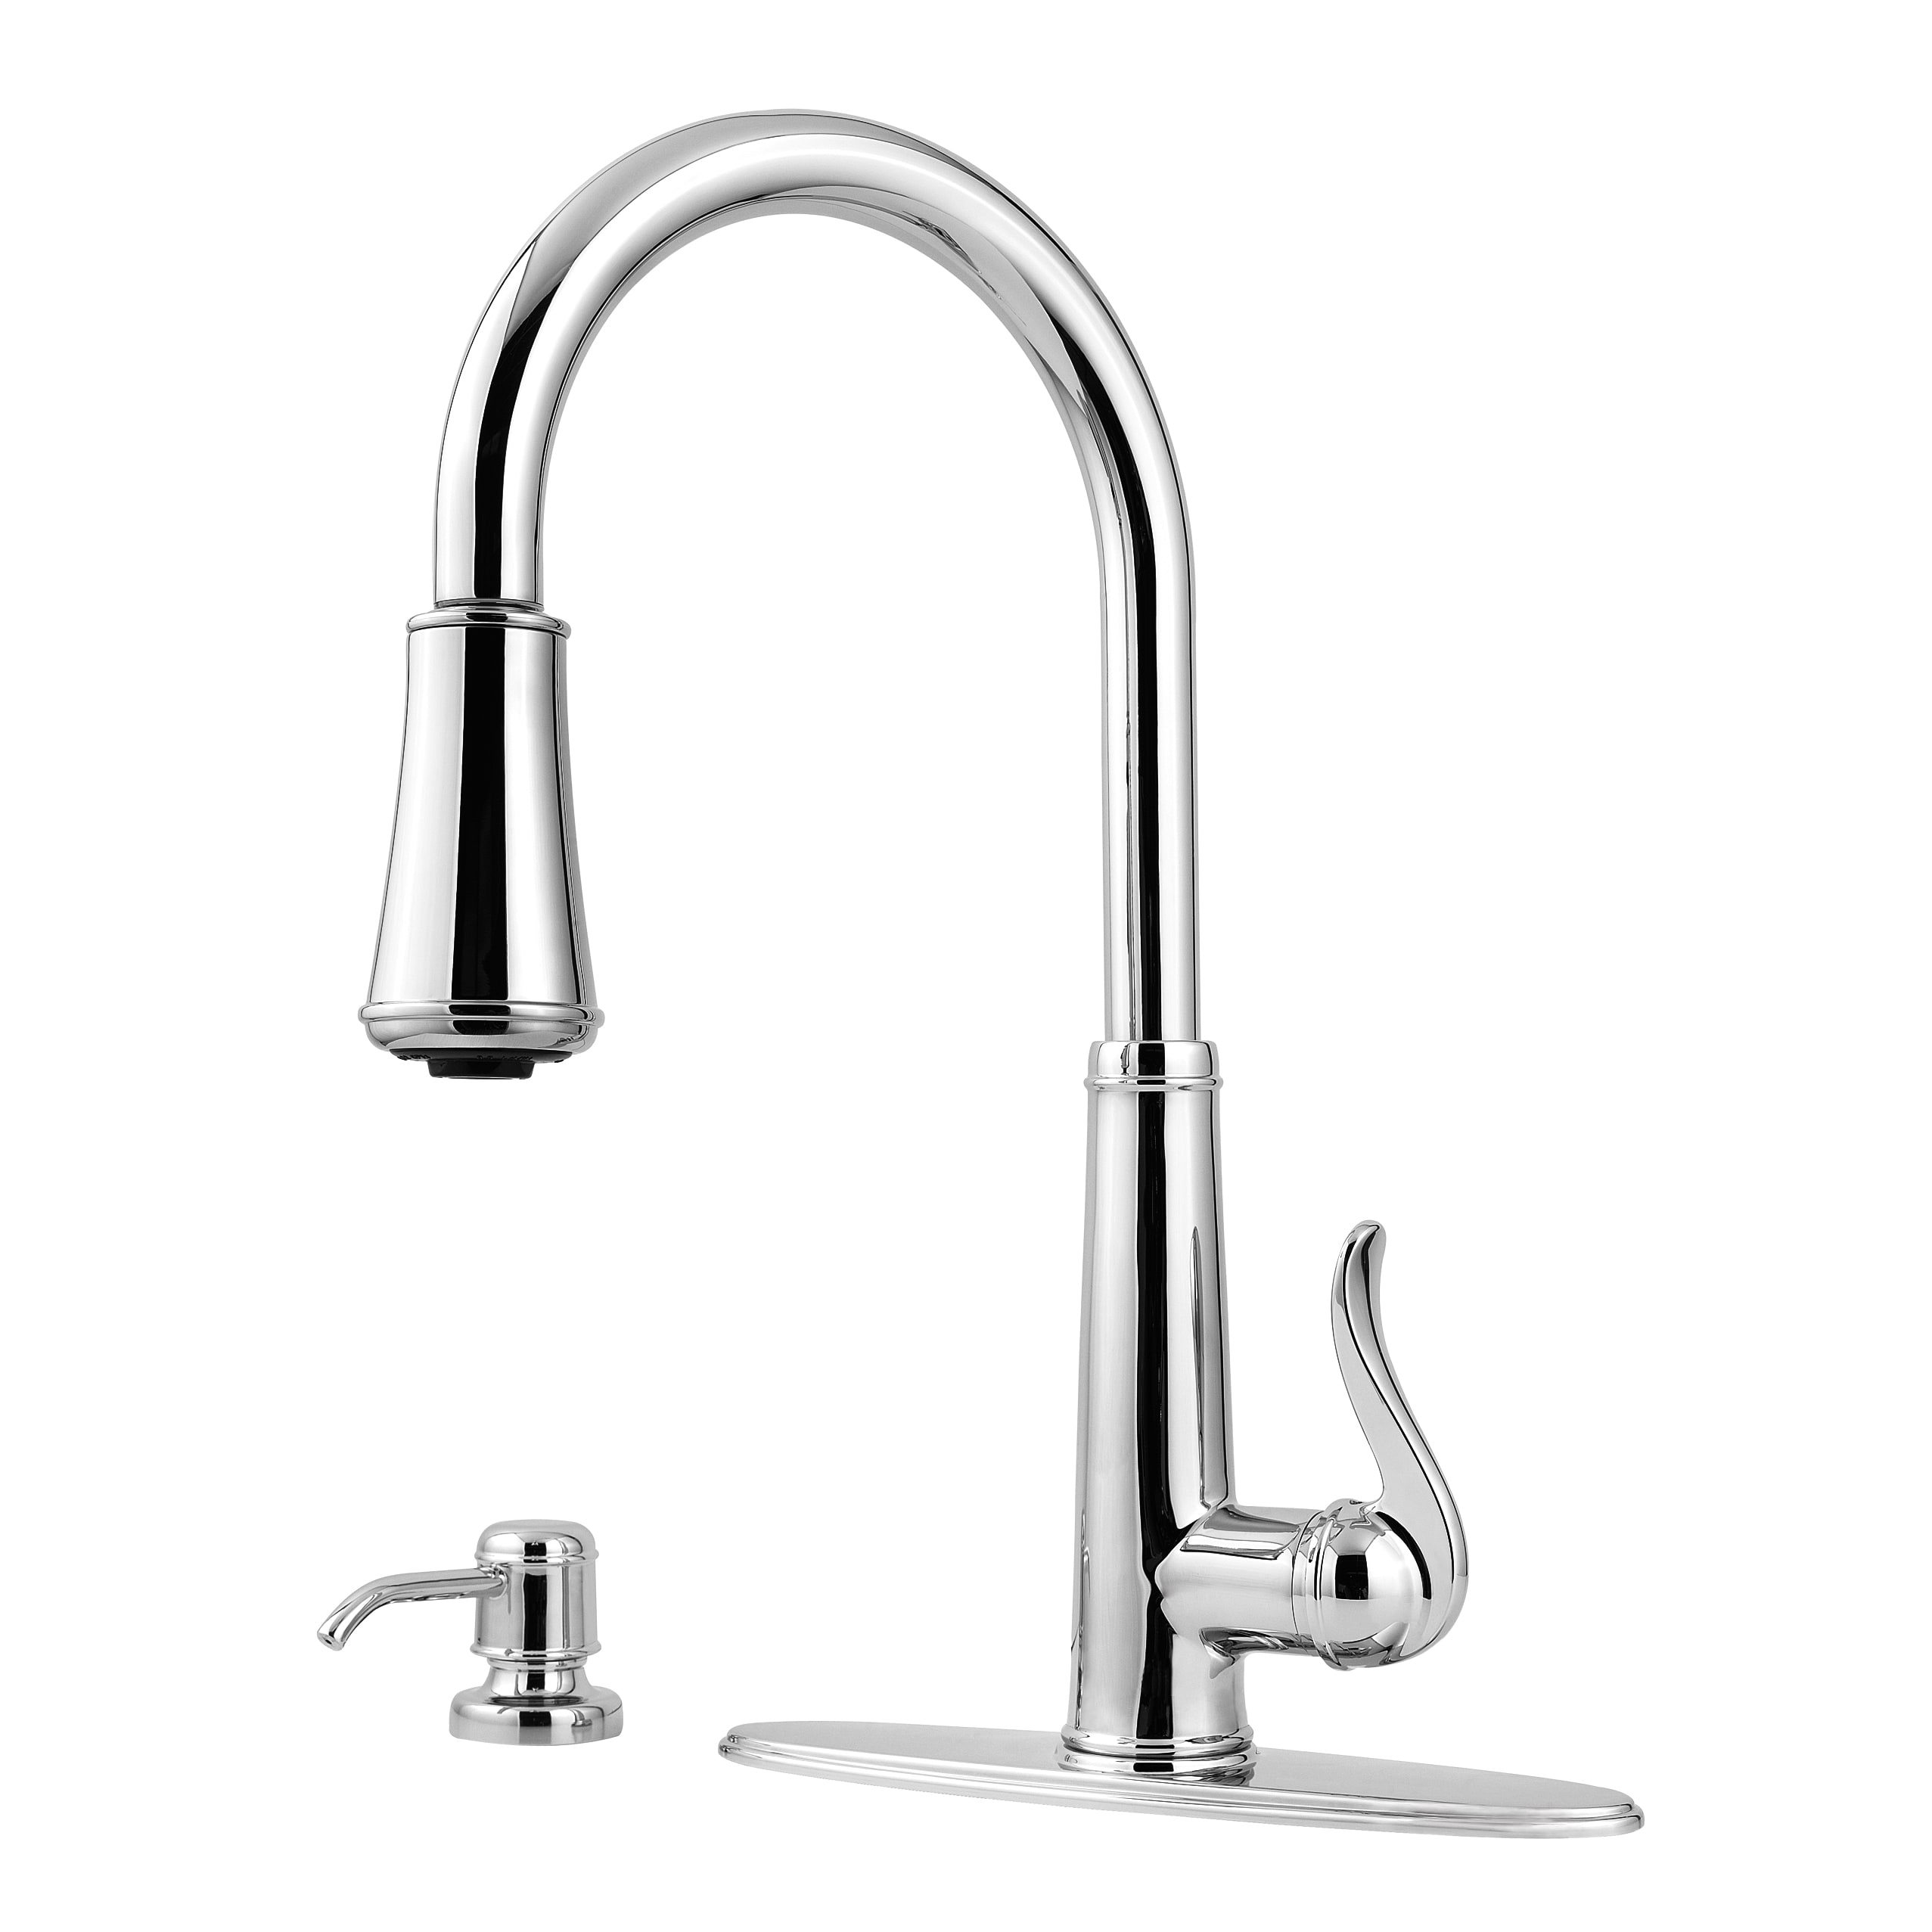 unique price faucets leaky cartridge delta photos best size repair of tub full faucet kitchen pfister